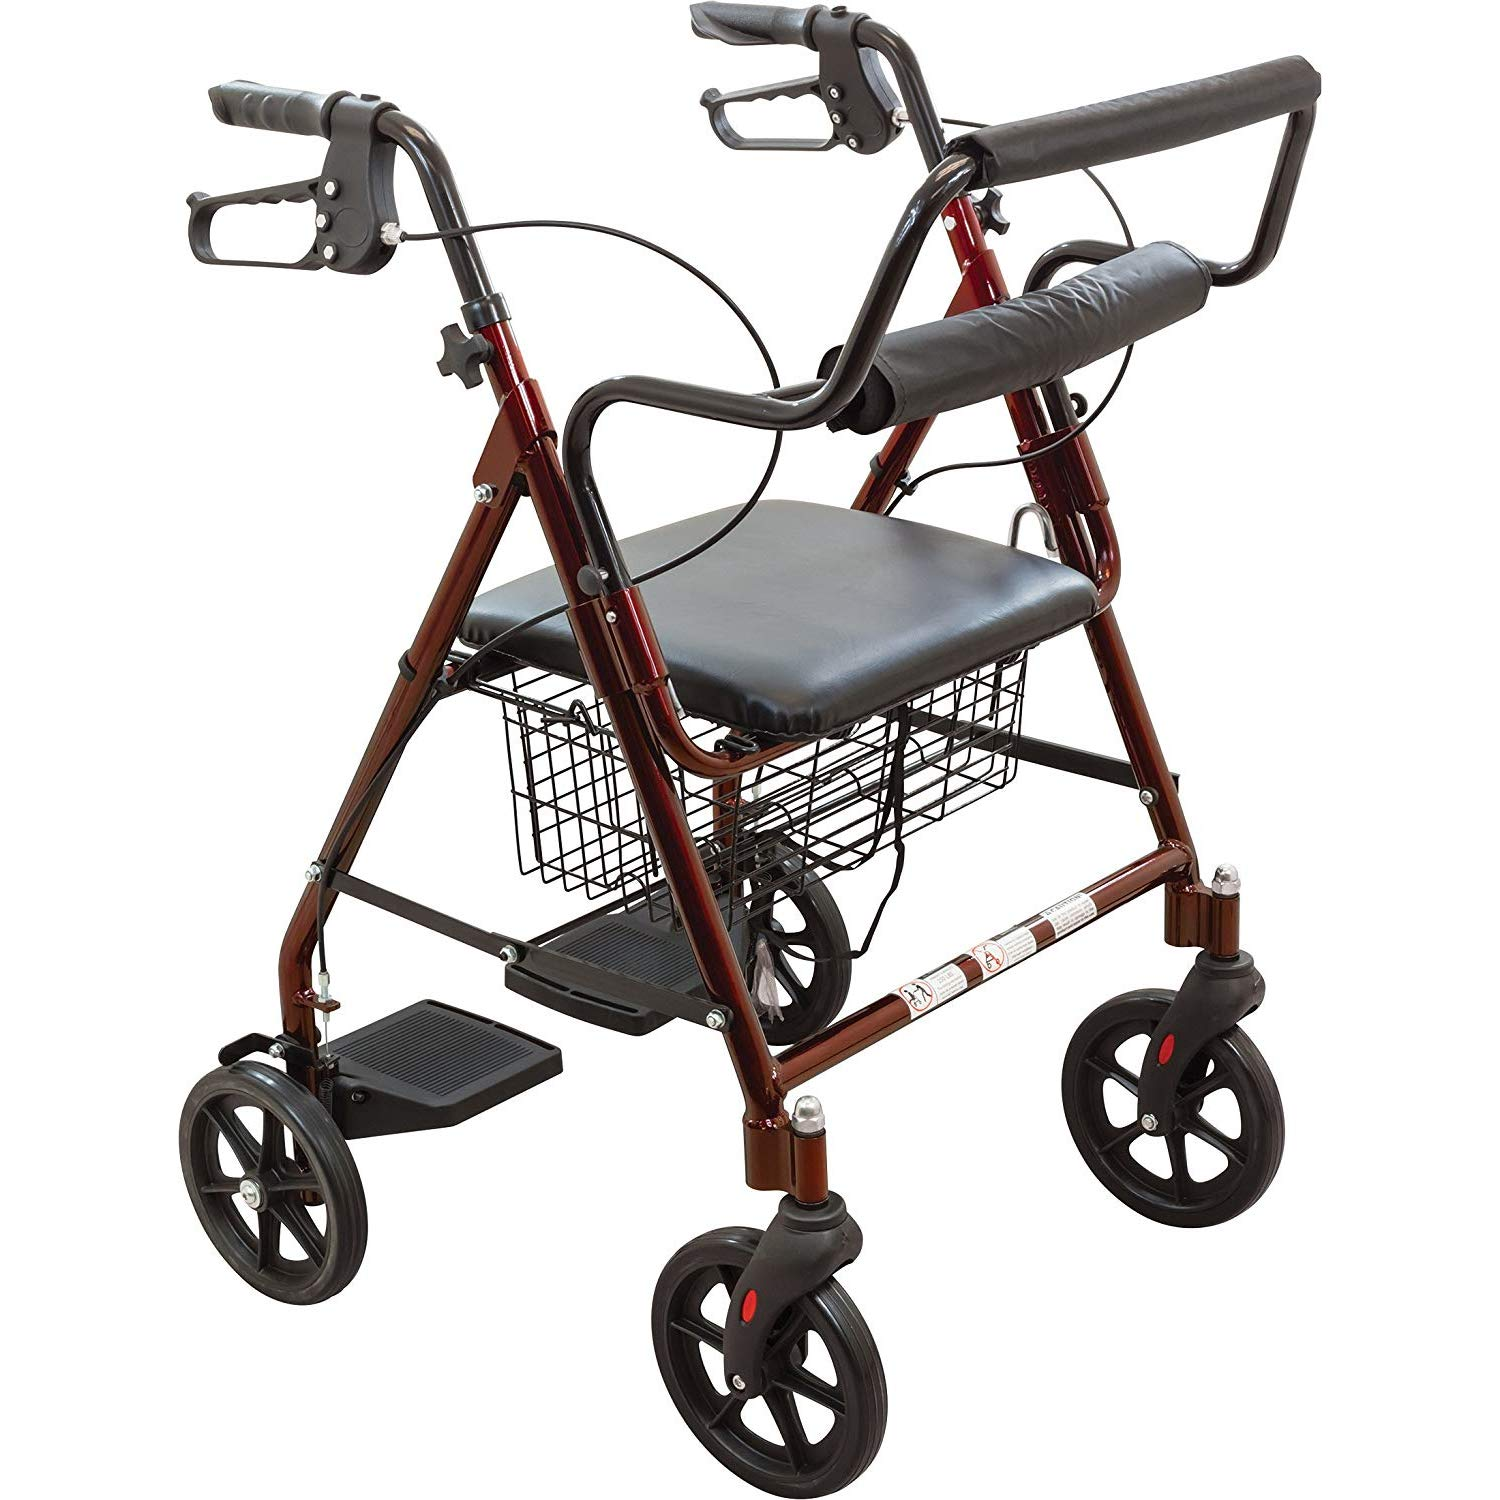 ProBasics Aluminum Rollator Walker with Seat - Rolling Walker with 6-inch Wheels - Foldable - Padded Seat and Backrest, Height Adjustable Handles, 300 Pound Weight Capacity, Burgundy by Roscoe Medical